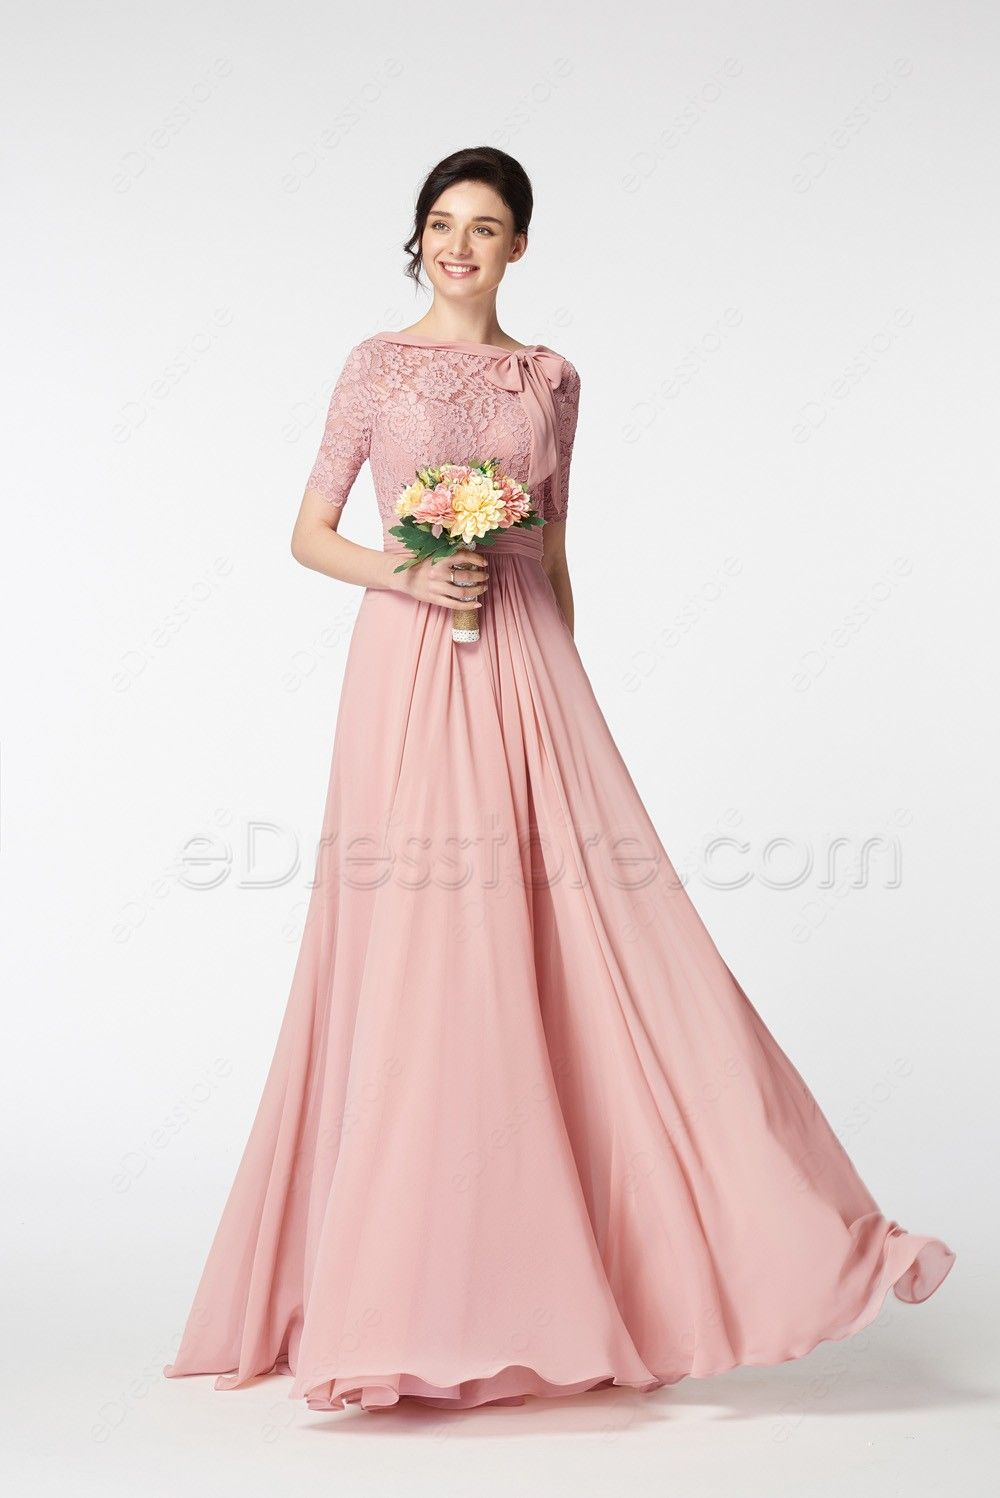 Modest Lace Blush Bridesmaid Dresses with Sleeves Bow | Comprar y Cosas